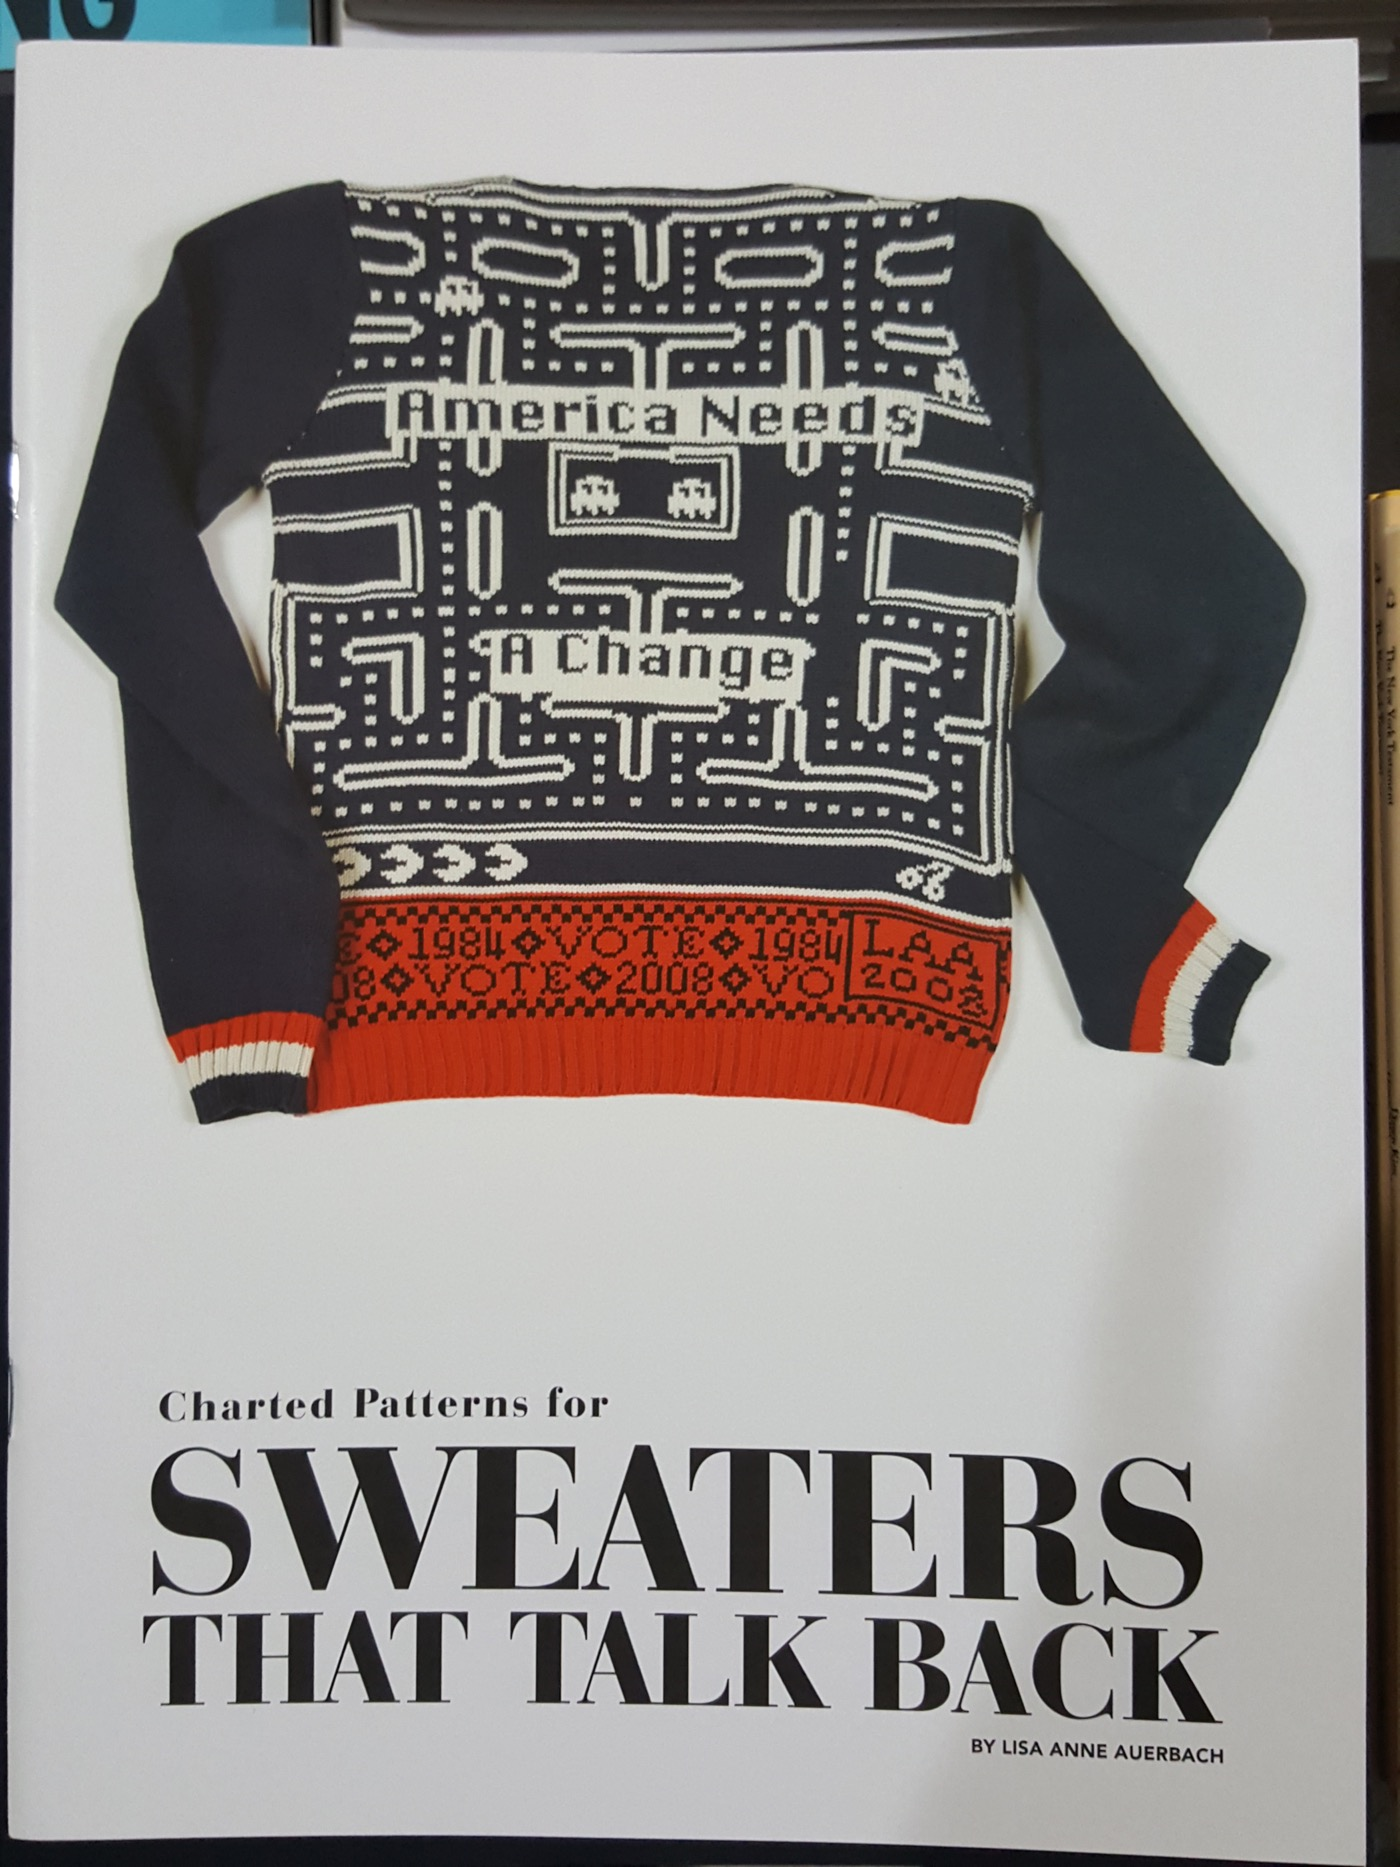 Charted Patterns for Sweaters That Talk Back by Lisa Anne Auerbach